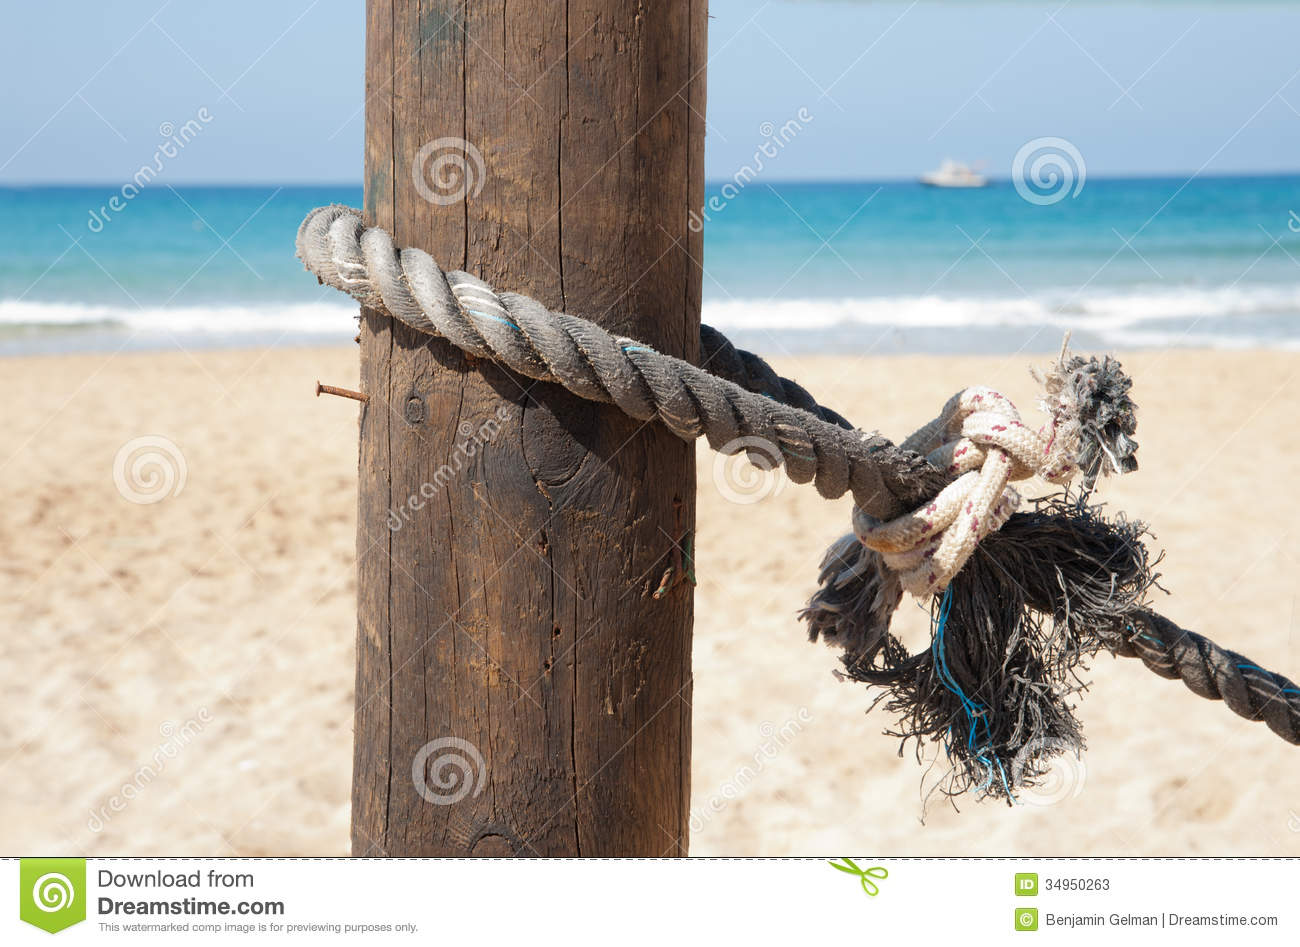 Idea remarkable, Bound to pole with rope that can